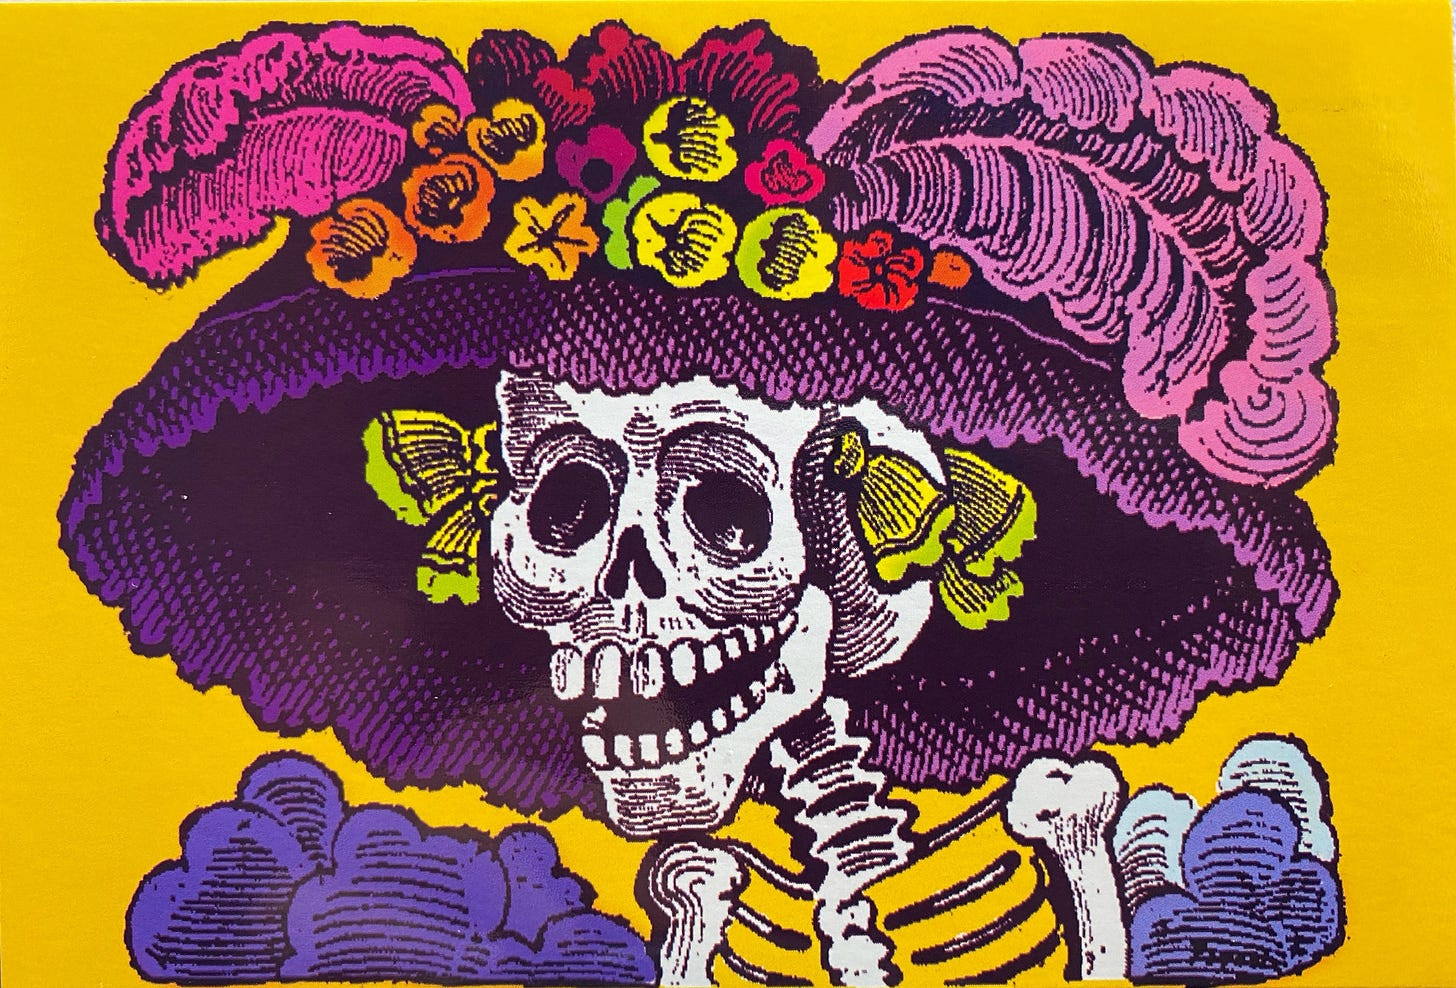 Portrait of a skeleton wearing a wide hat with plumage and flowers on top.